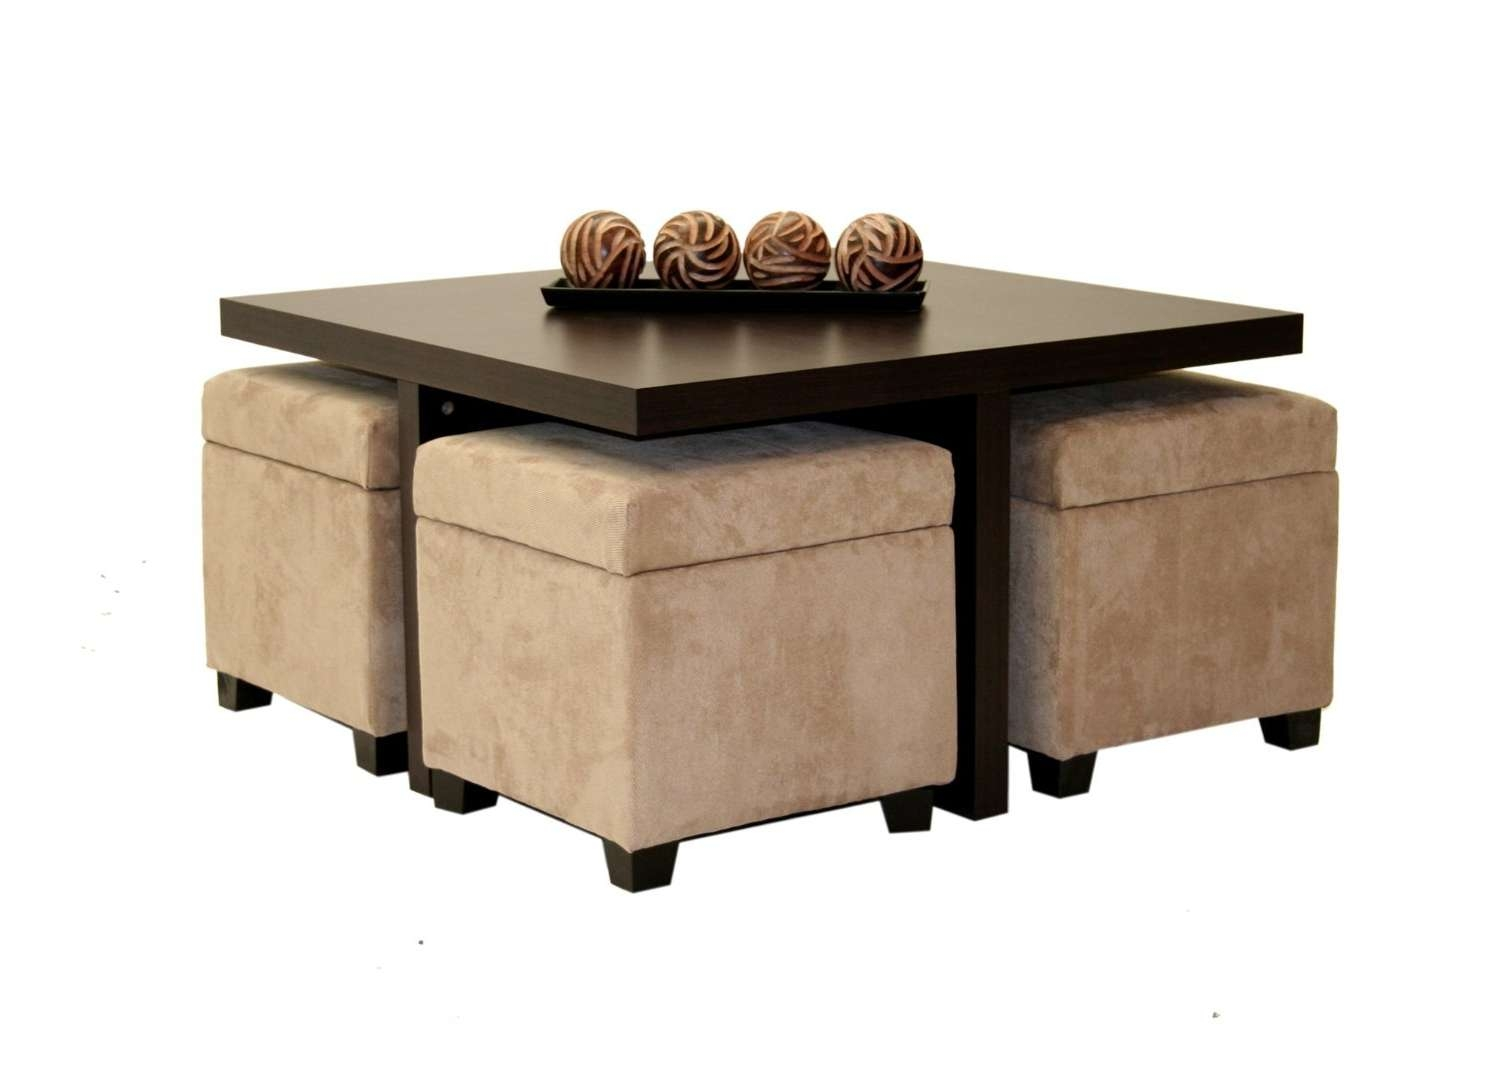 Well Liked Square Coffee Tables With Storage Cubes Throughout Coffee Table With Ottomans Underneath Decofurnish Storage Small (View 18 of 20)